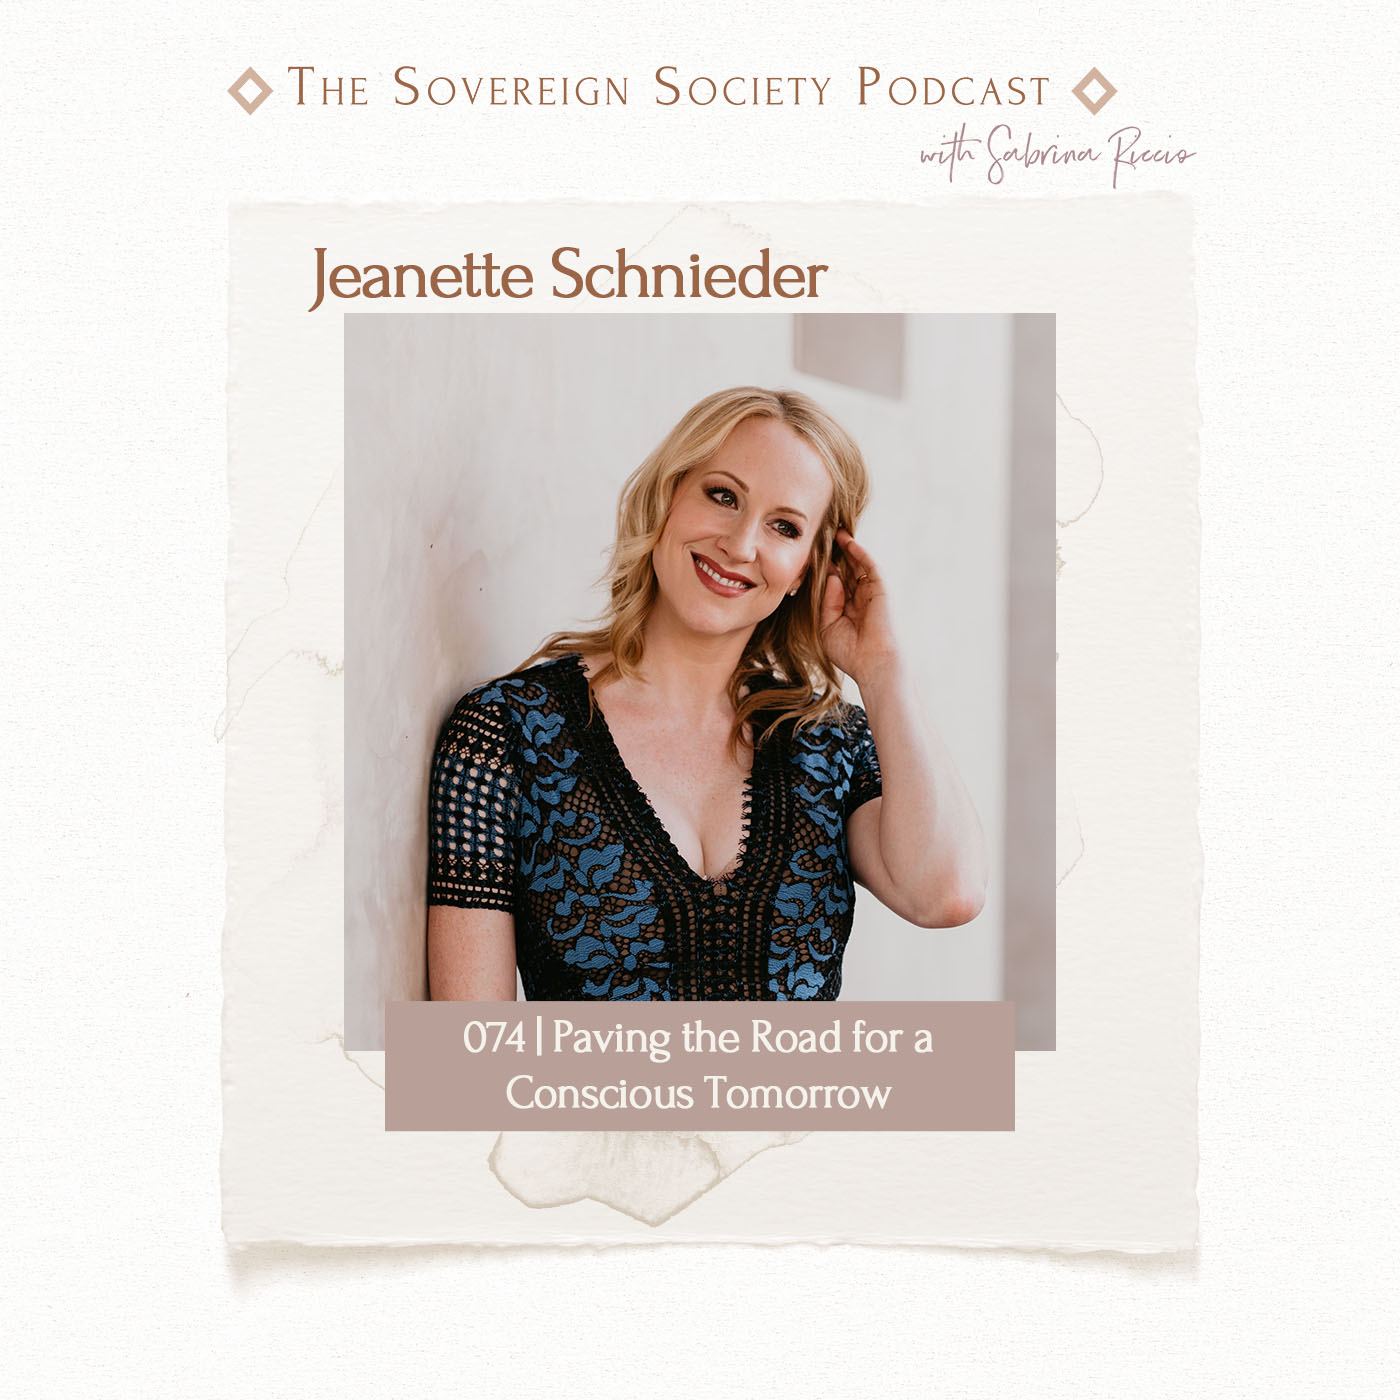 Sovereign Society Podcast | 074 | Paving the Road for a Conscious Tomorrow / Jeanette Schneider